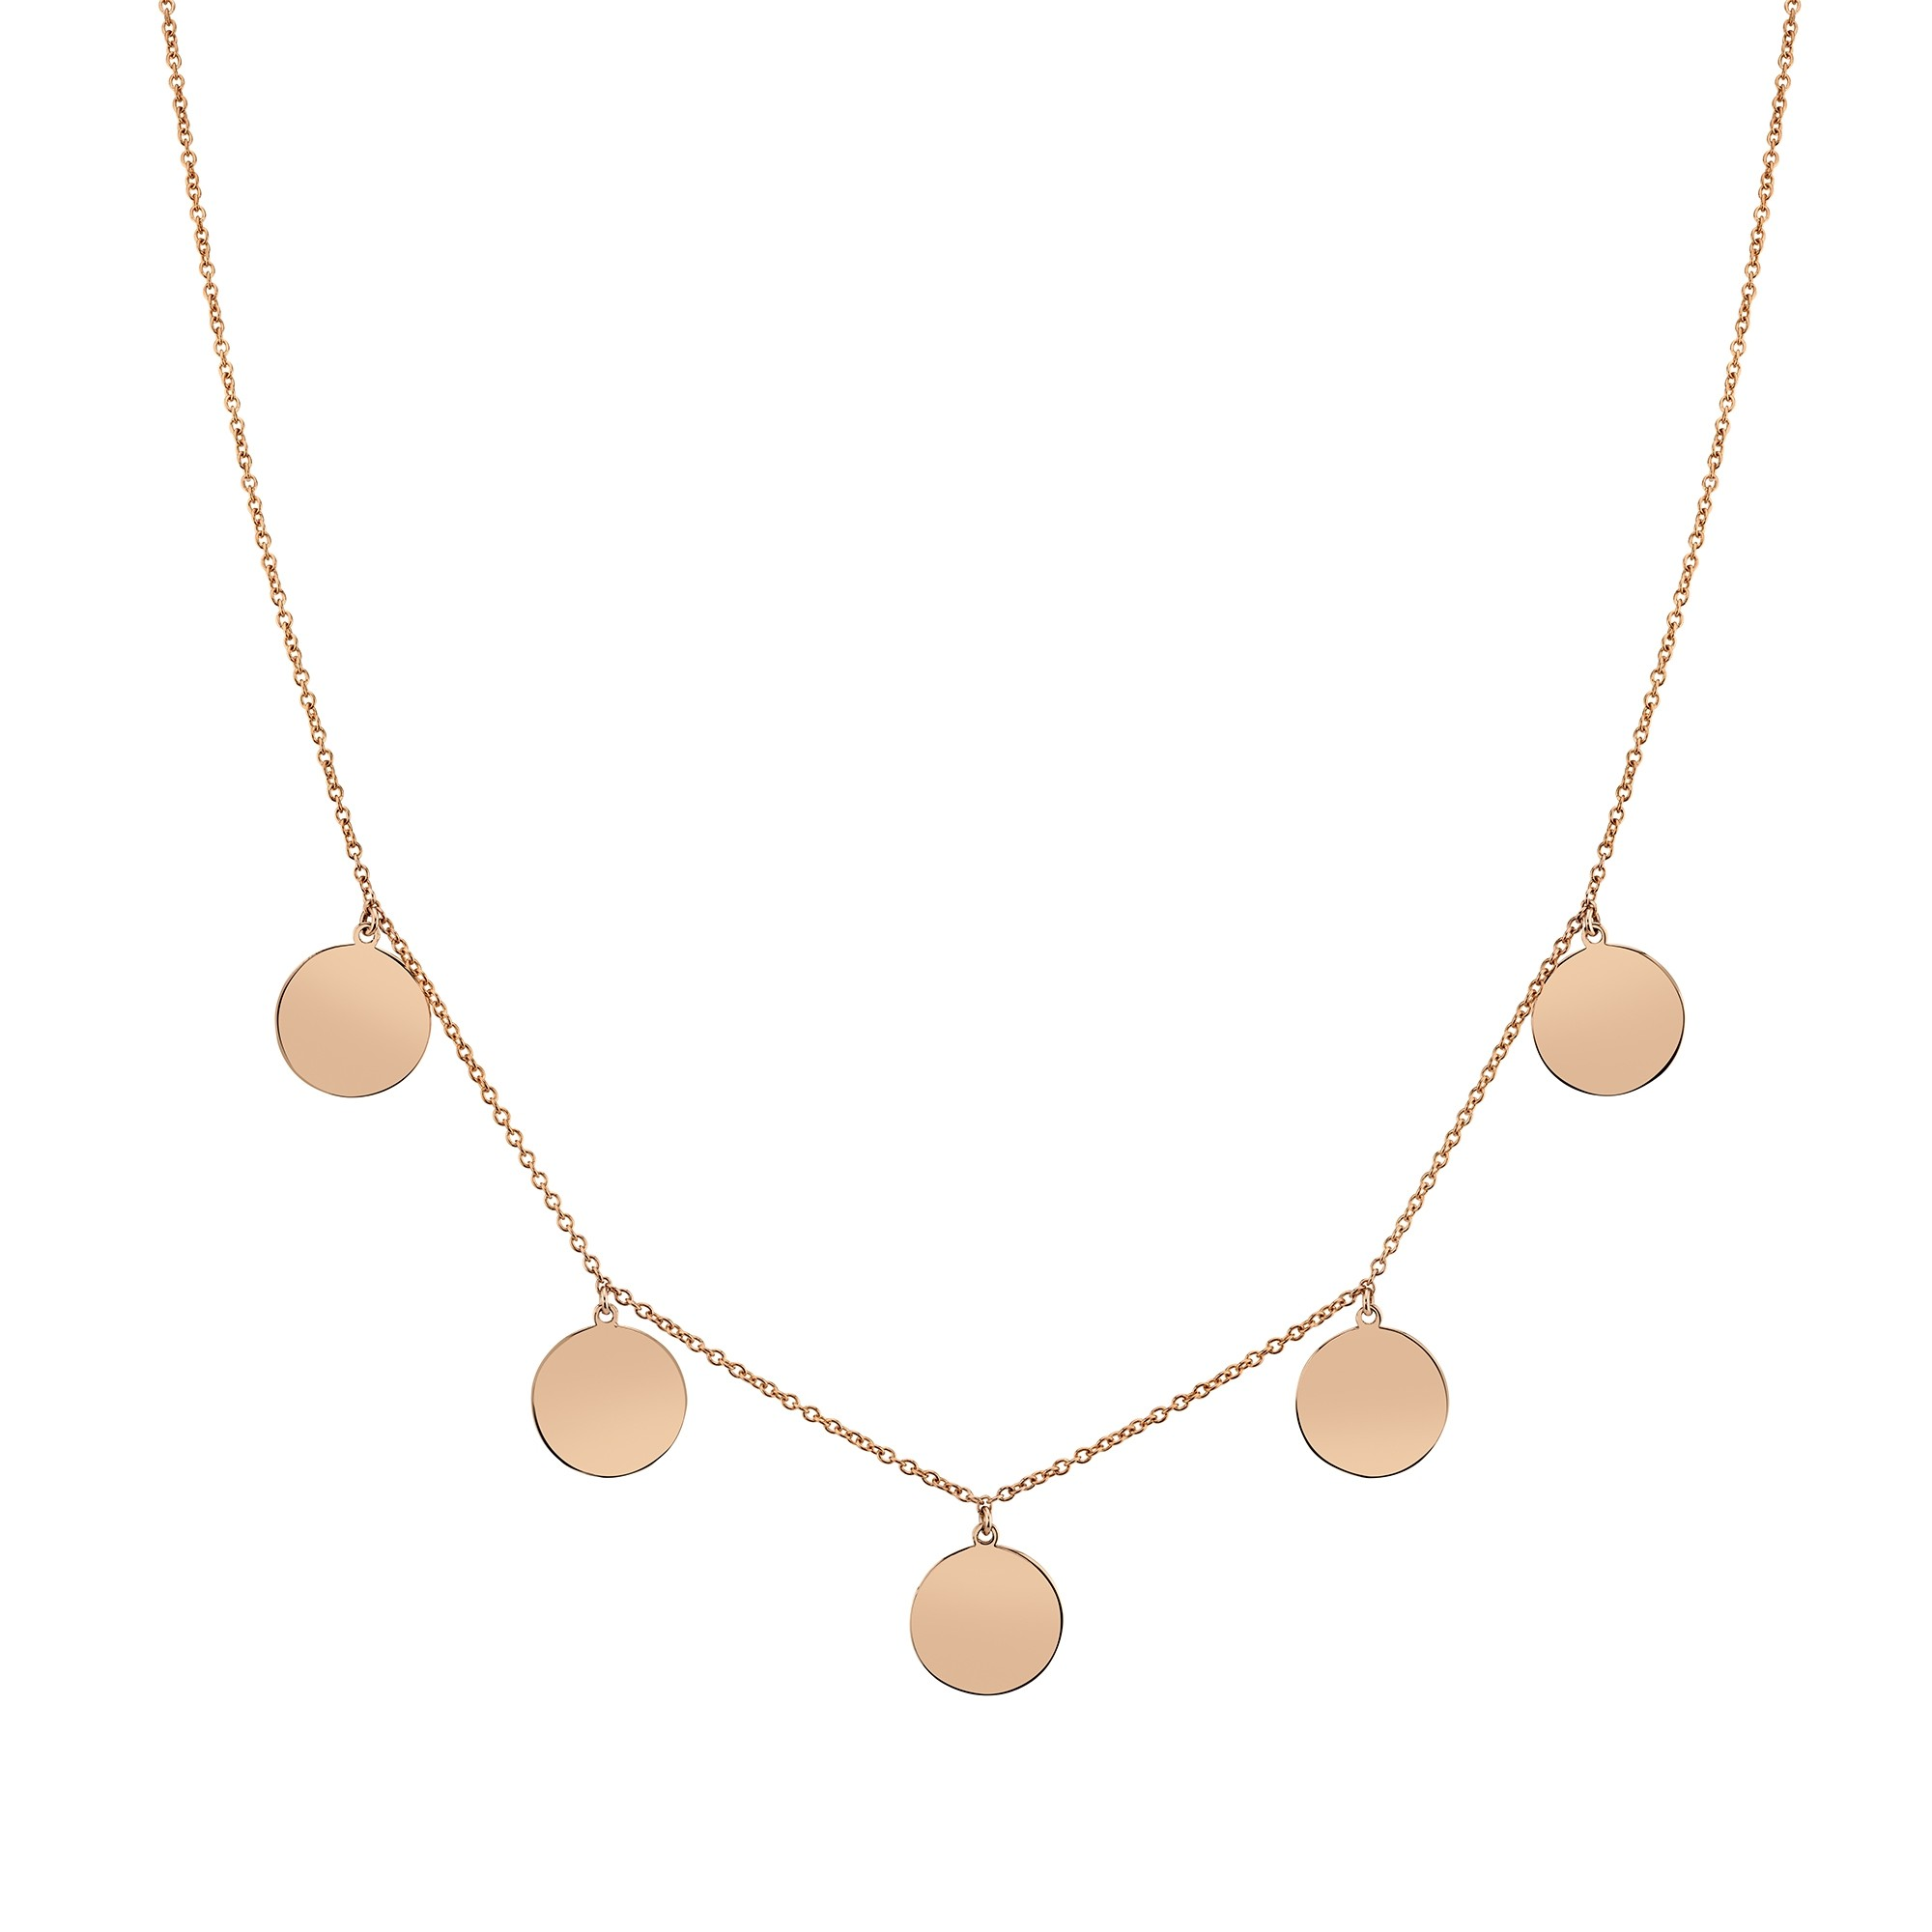 14k Rose Gold 5 Disc Necklace